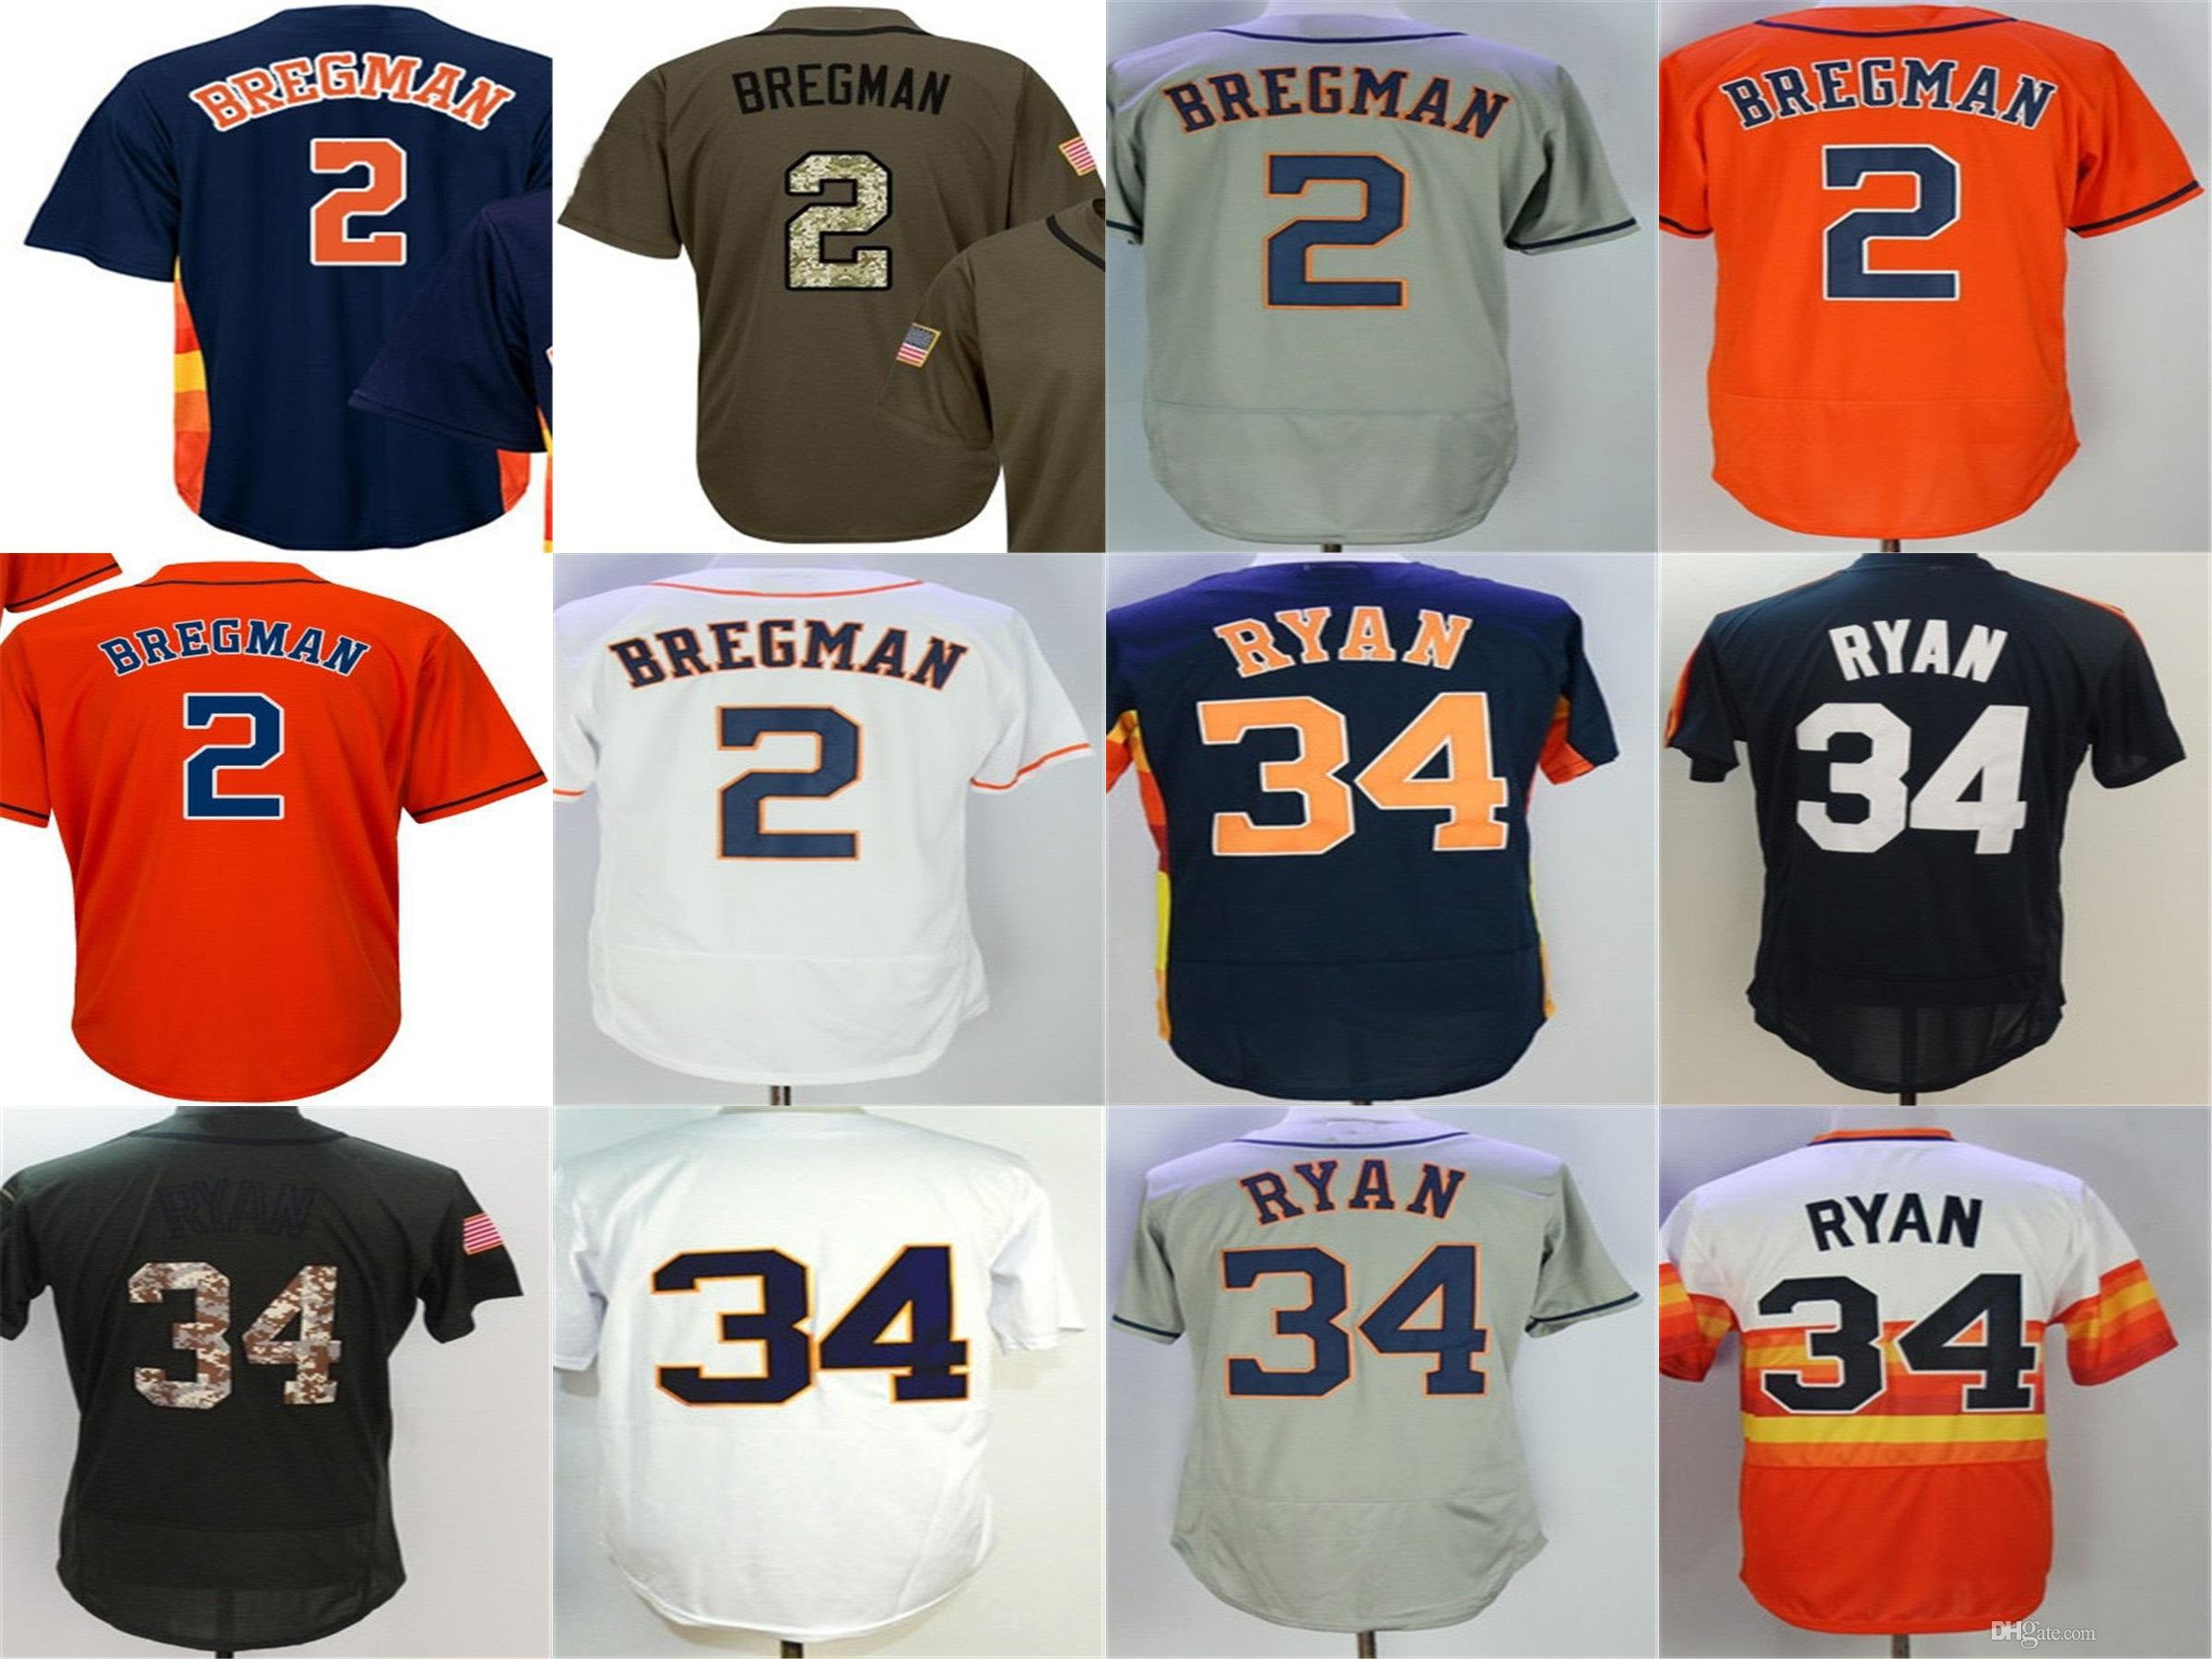 vintage baseball jerseys